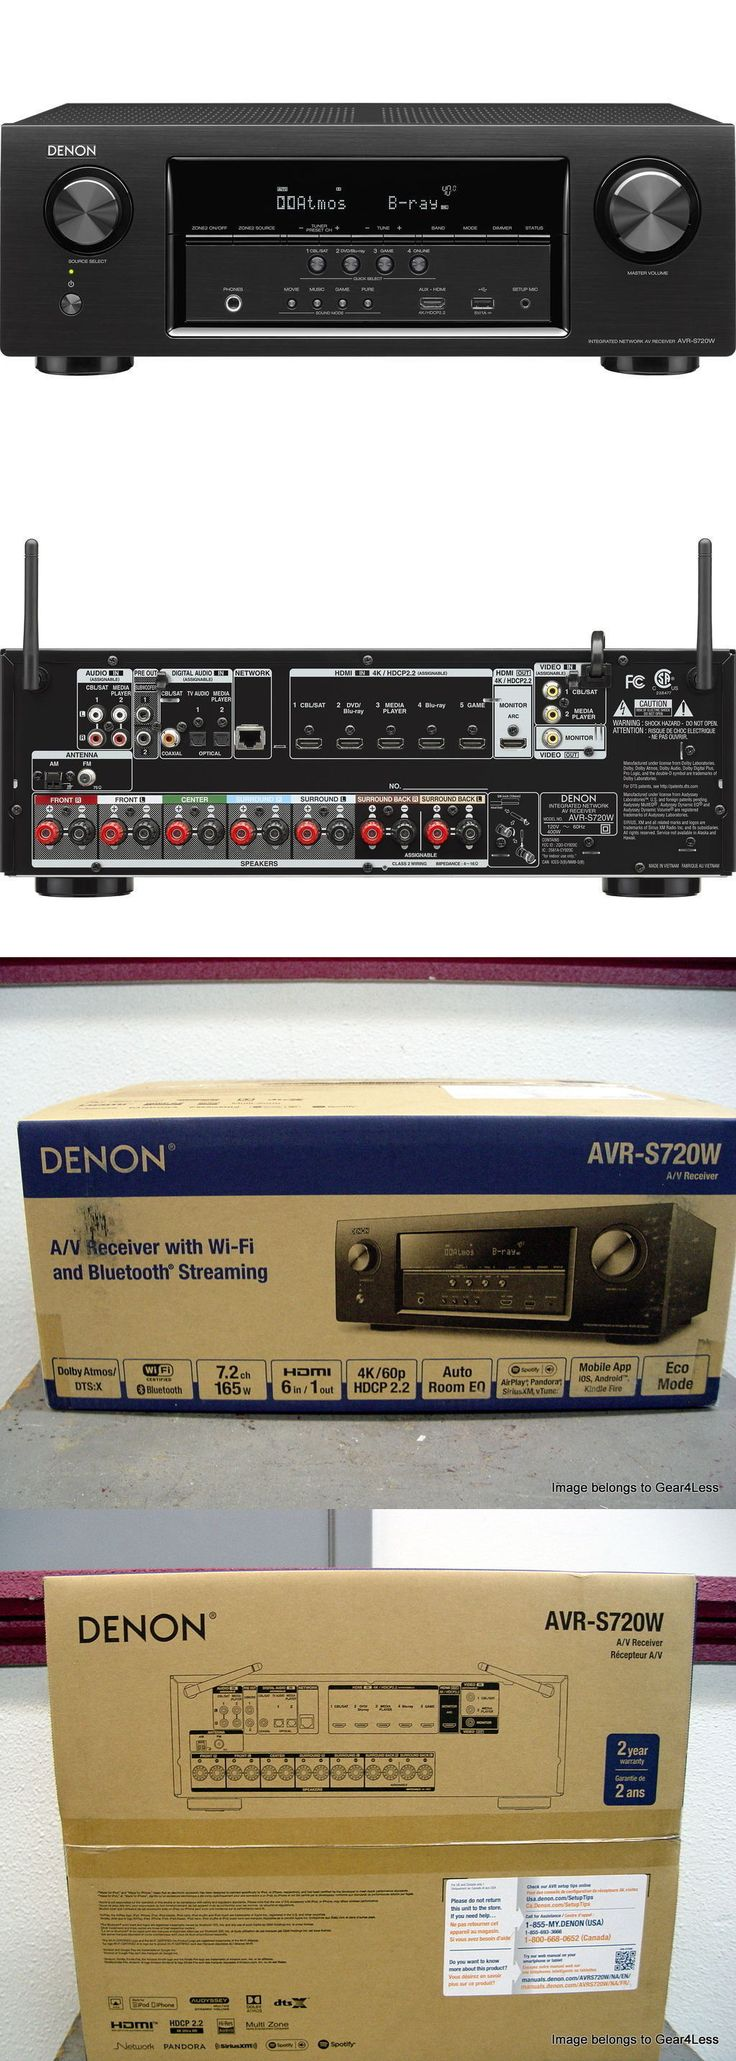 Home Theater Receivers: Denon Avr-S720w 7.2 Home Theater A V Receiver Amp Dolby Atmos Wifi Bluetooth New -> BUY IT NOW ONLY: $327.95 on eBay!